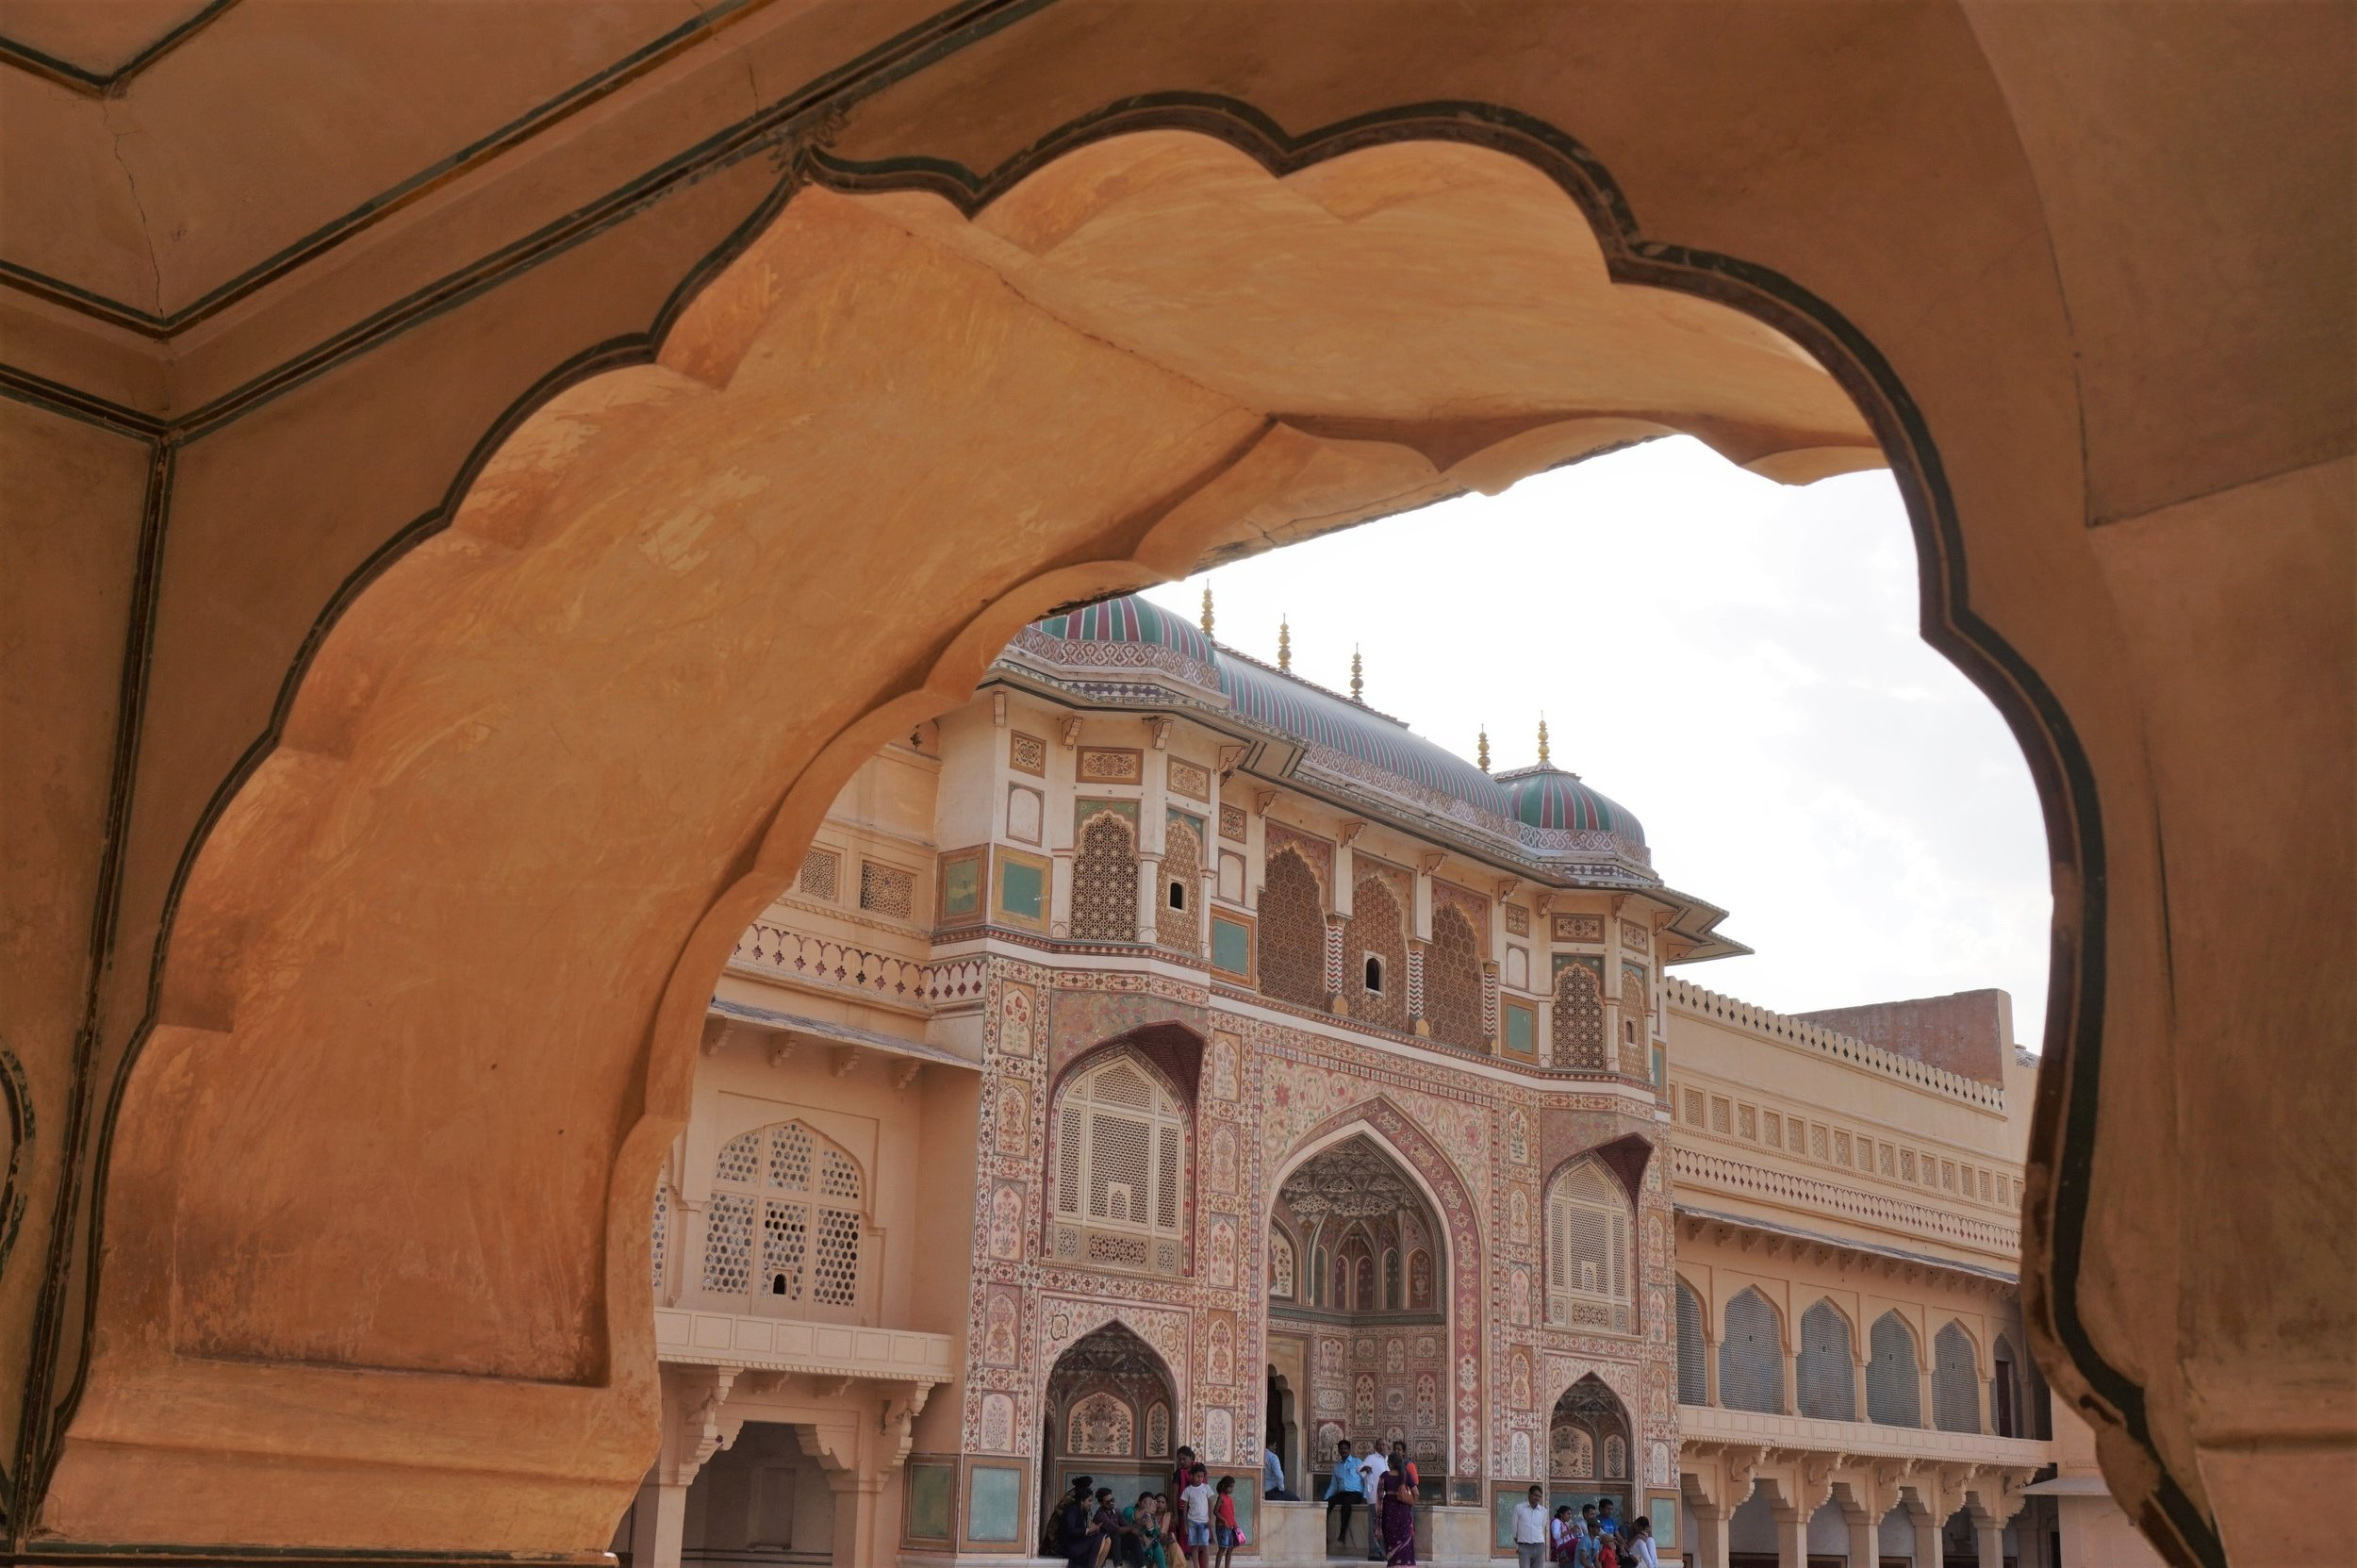 The beautiful Amber Fort in Jaipur